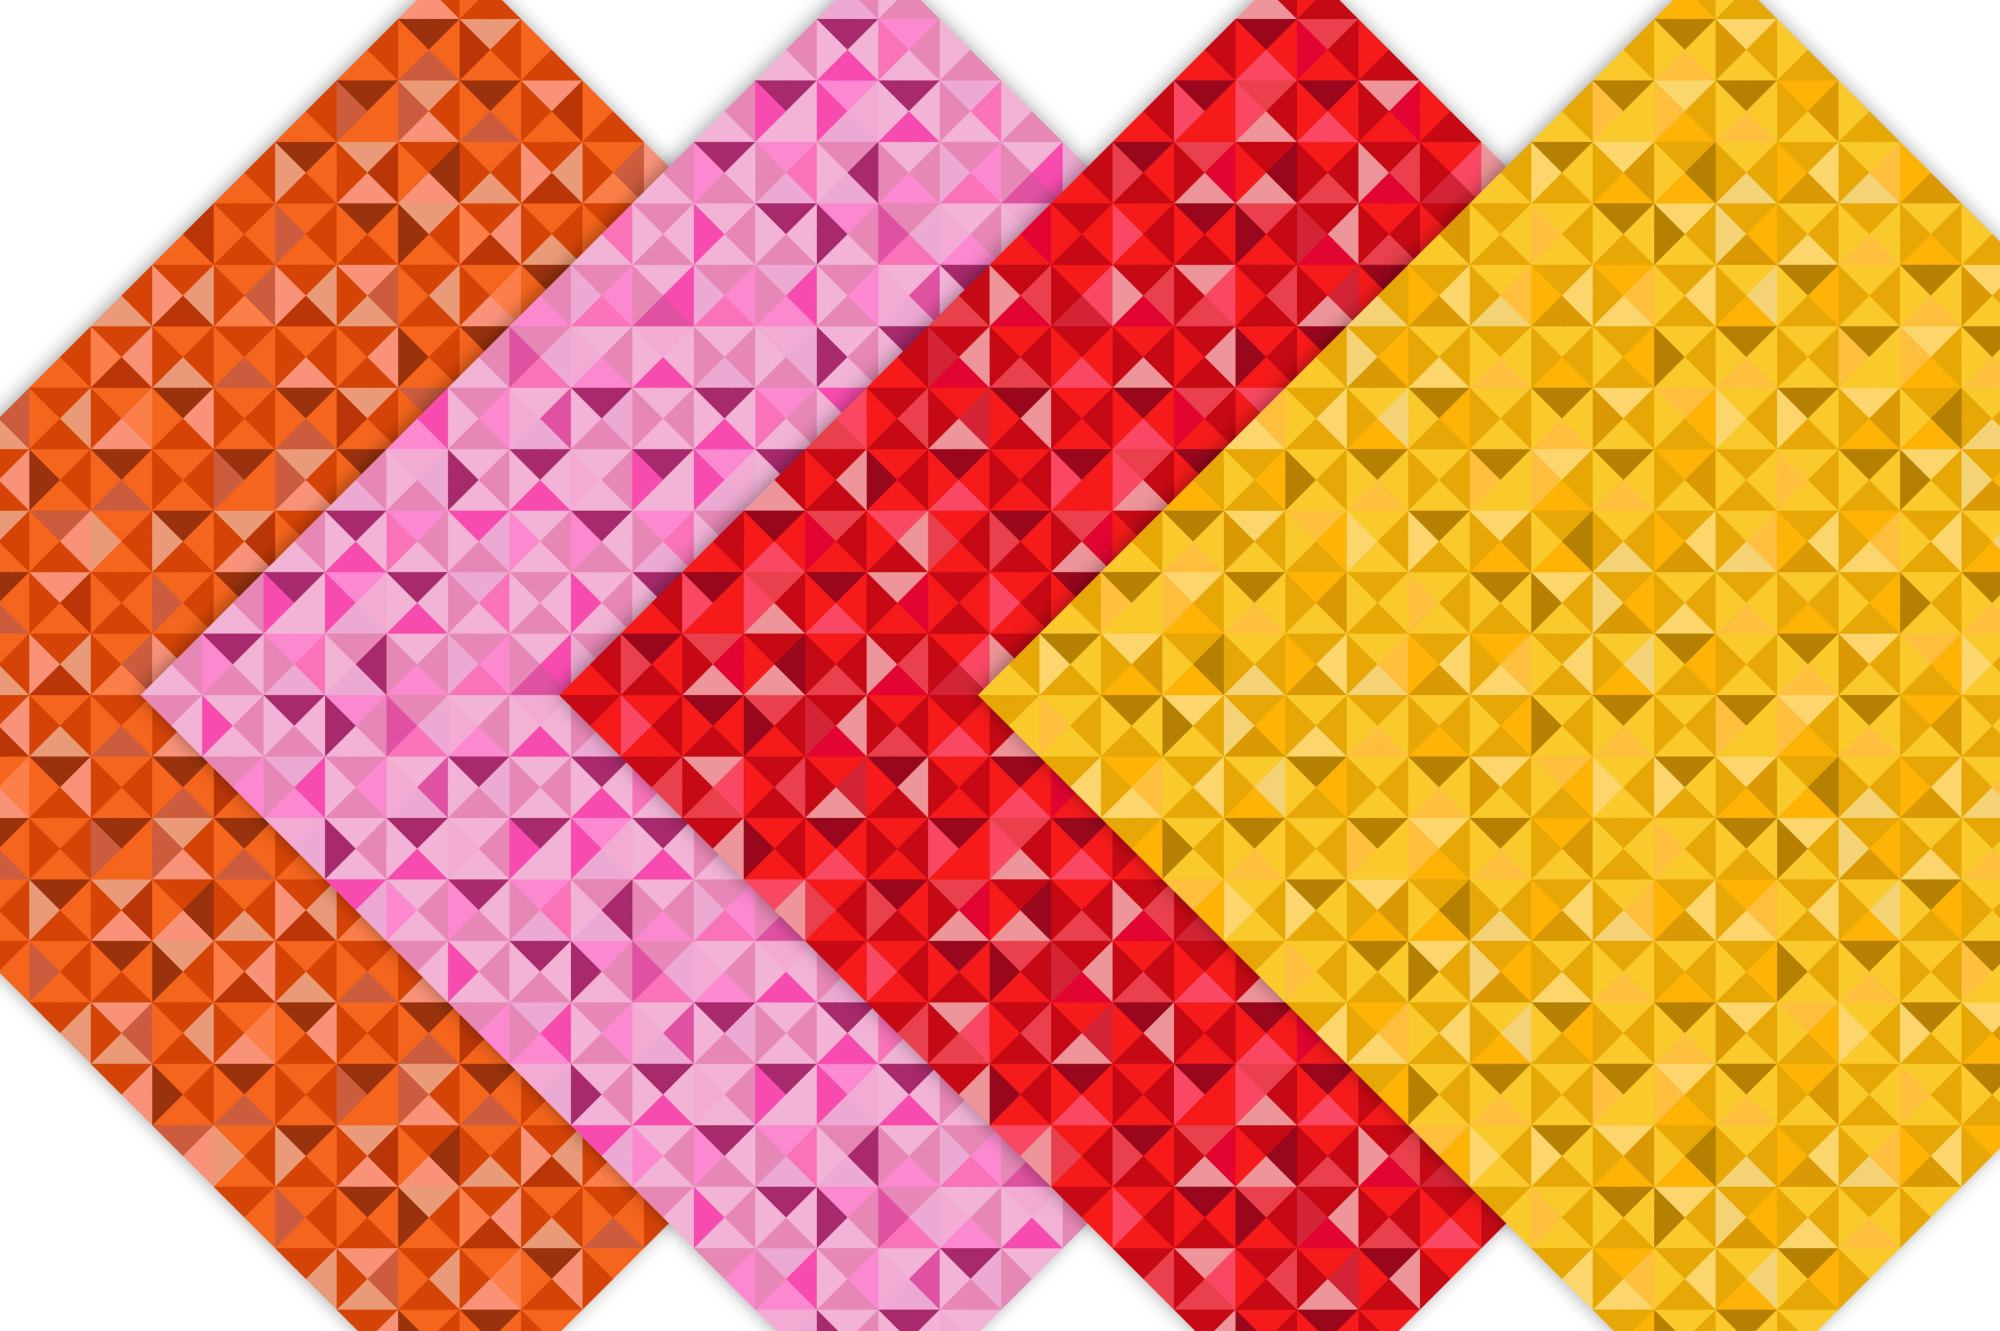 Colorful Mosaic Geometric Pattern example image 5